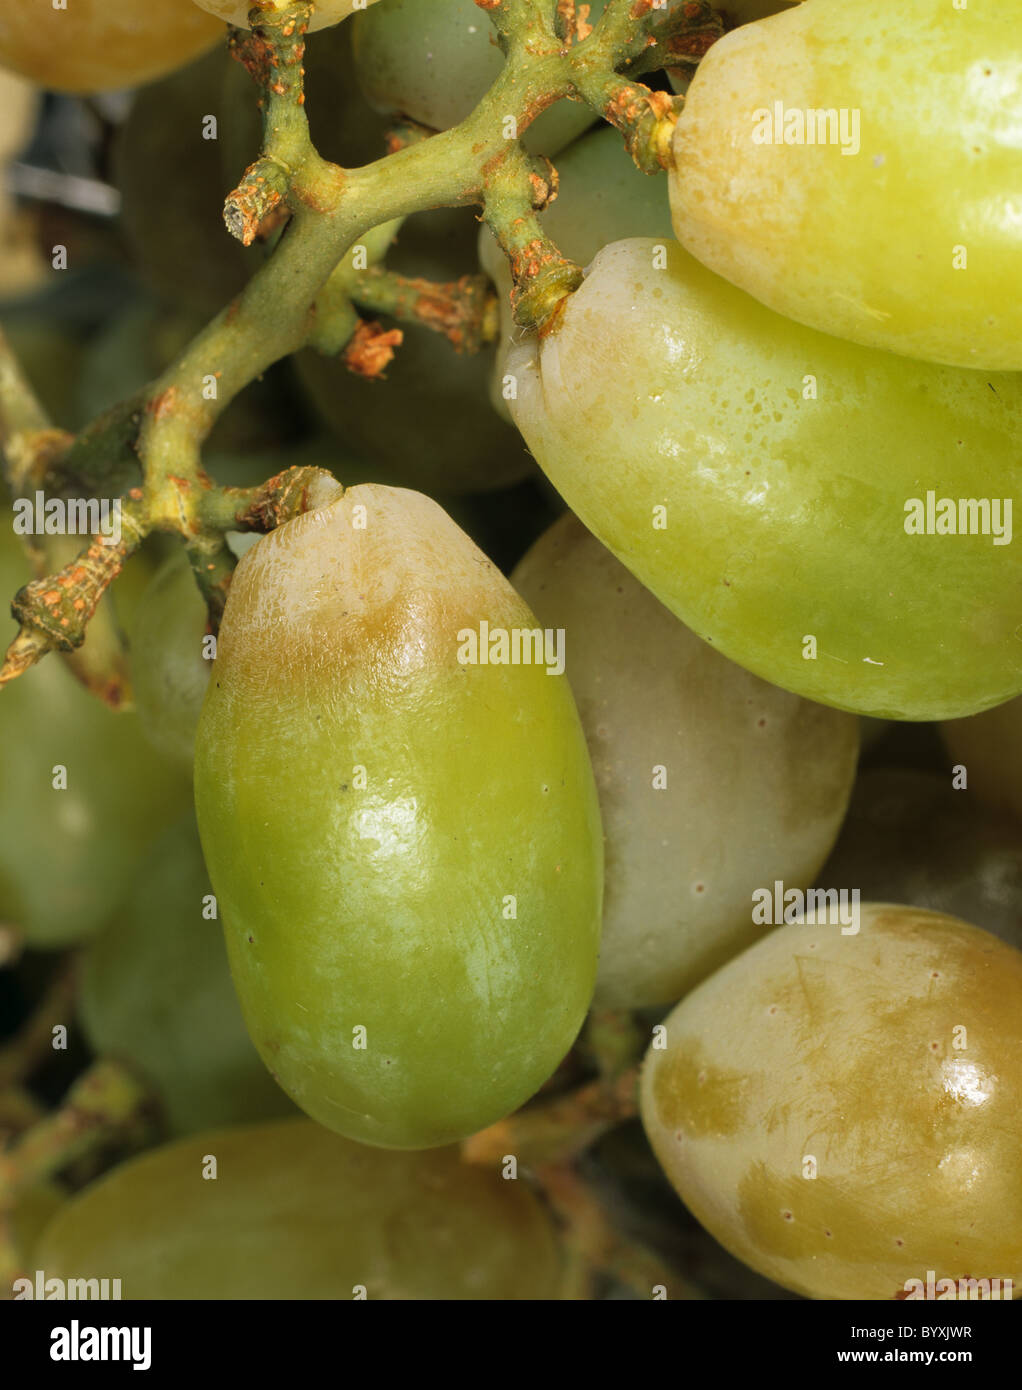 Sulphur dioxide bleaching of grapes, sulphur dioxide is used as a preservative - Stock Image